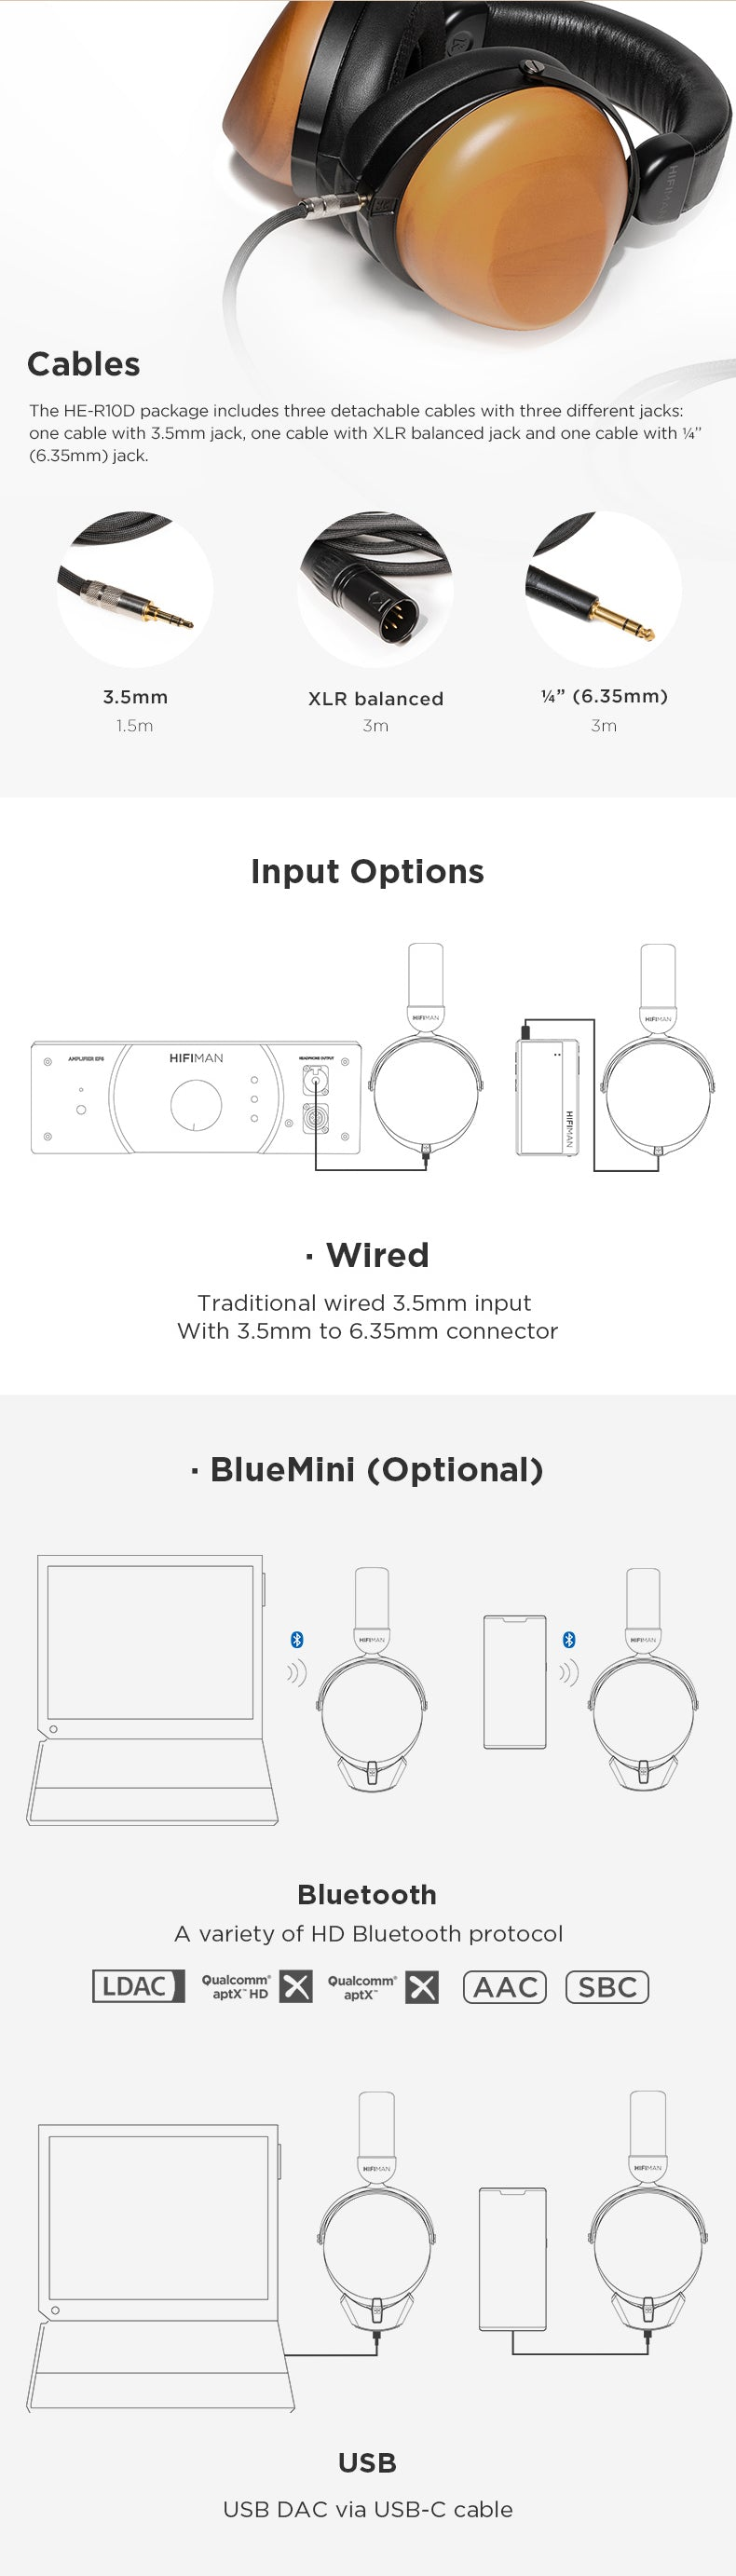 Images that correspond to Cables and Input Options headers